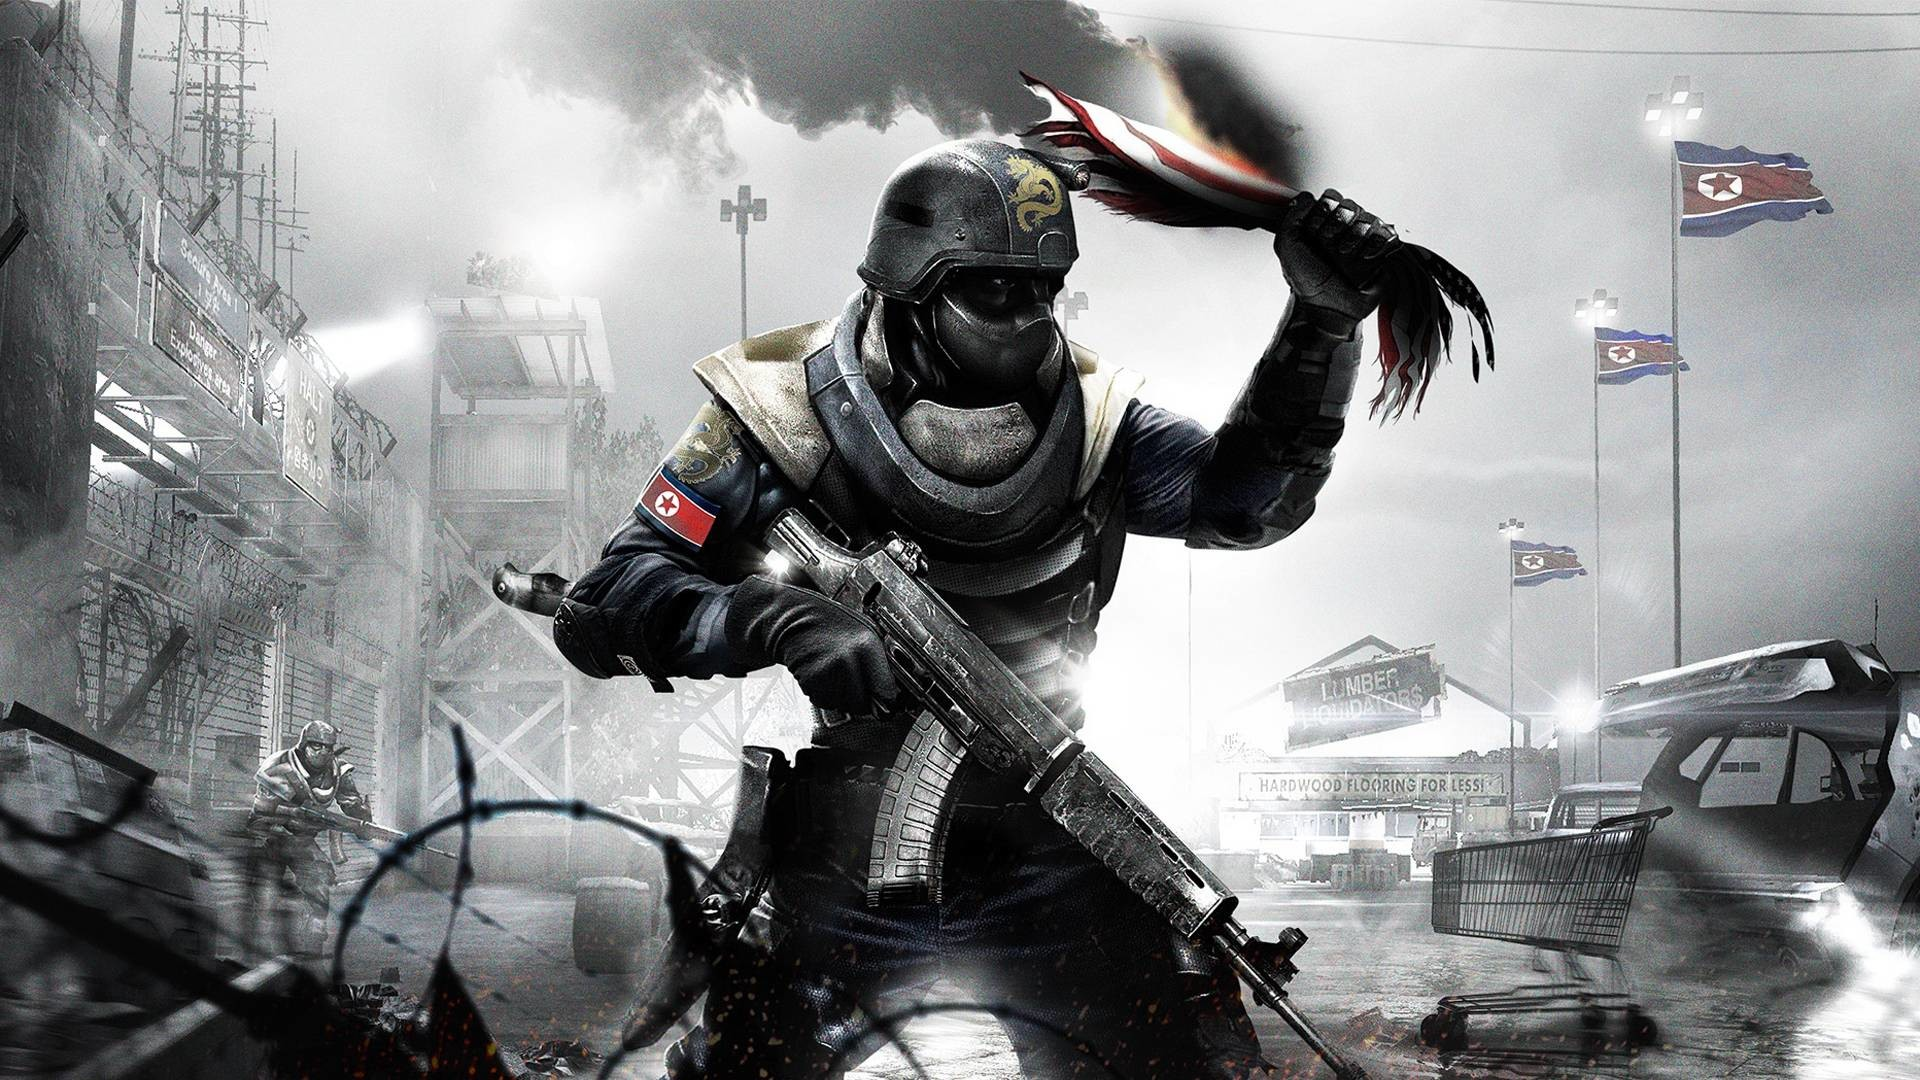 Homefront Wallpapers in full 1080P HD Â« GamingBolt.com: Video Game … Awesome  GamesBest …